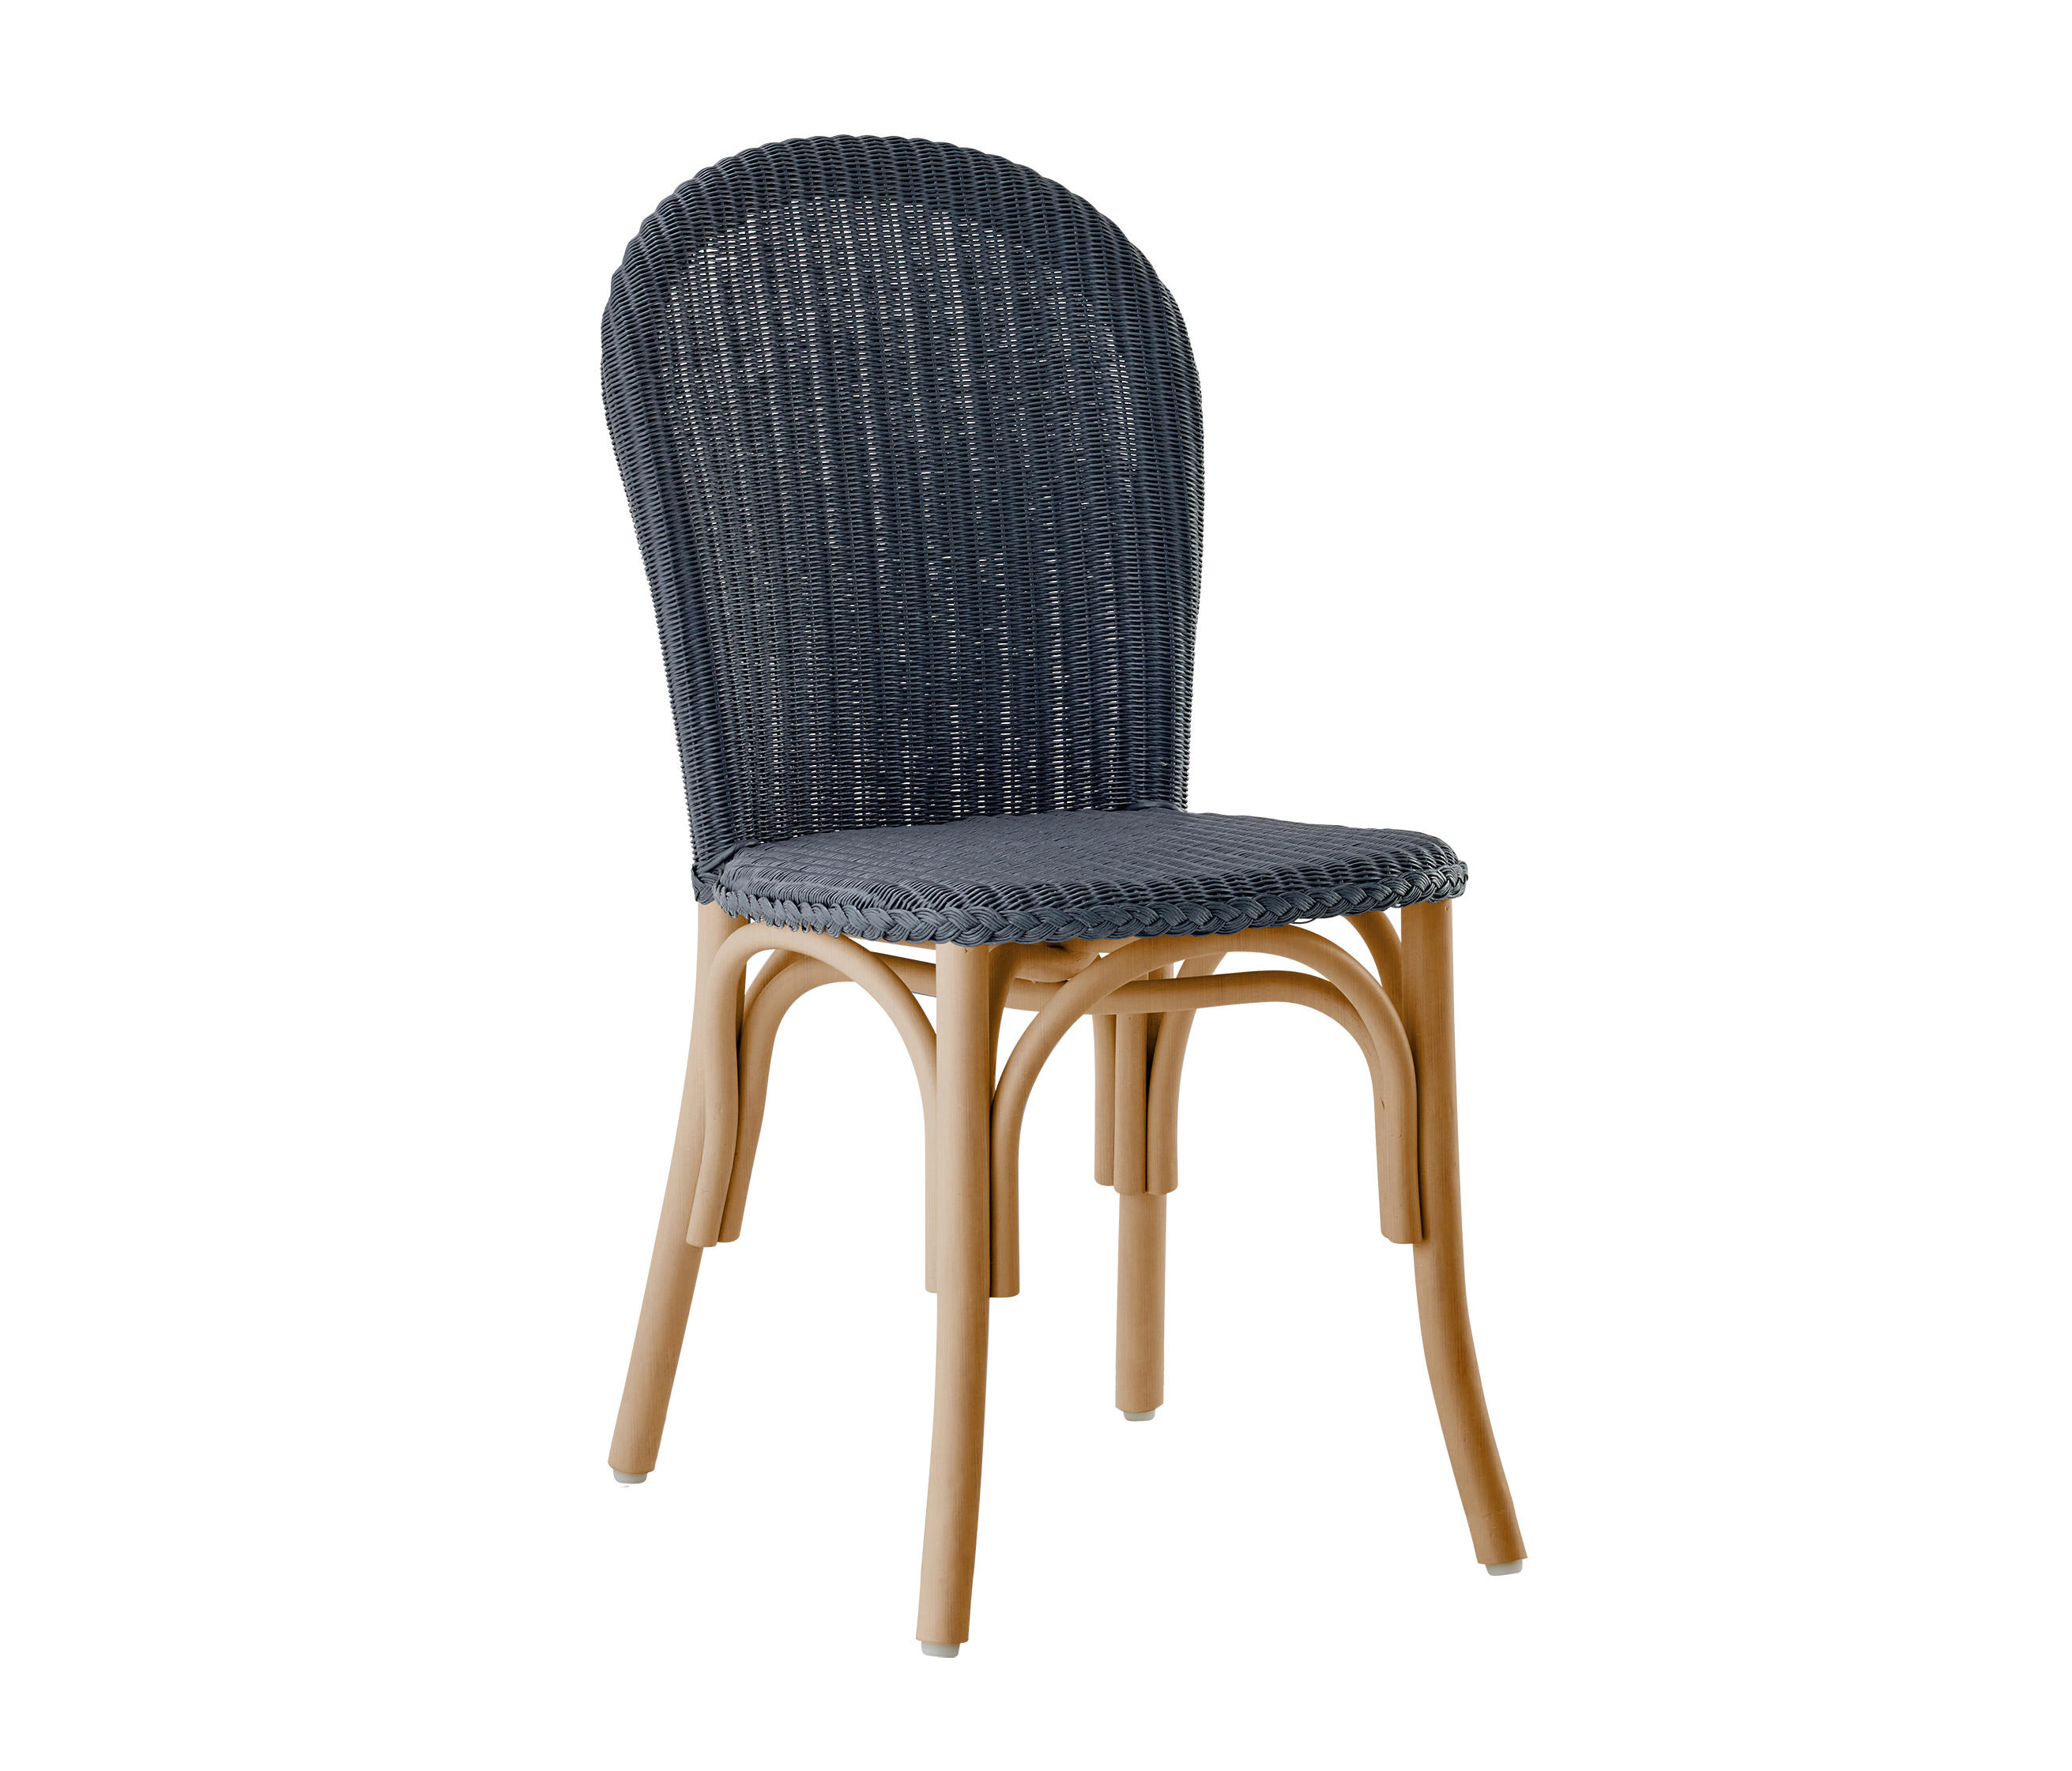 OFELIA | CHAIR - Chairs from Sika Design | Architonic